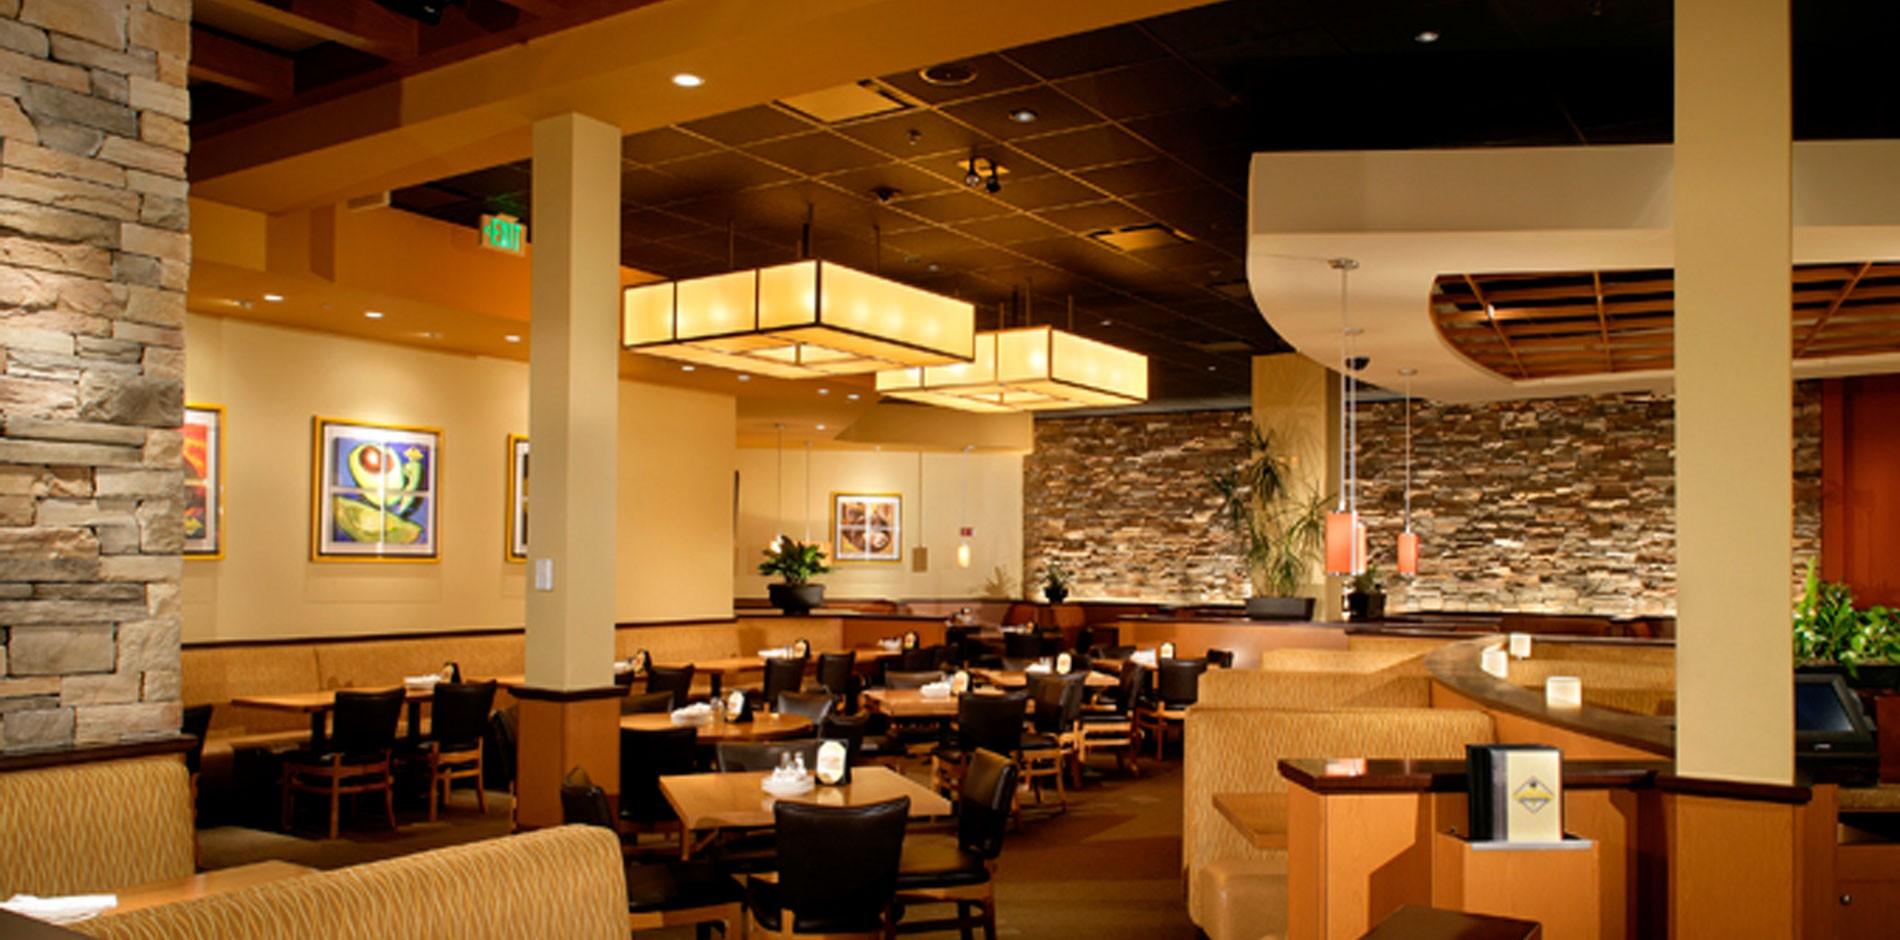 Reservations For California Pizza Kitchen